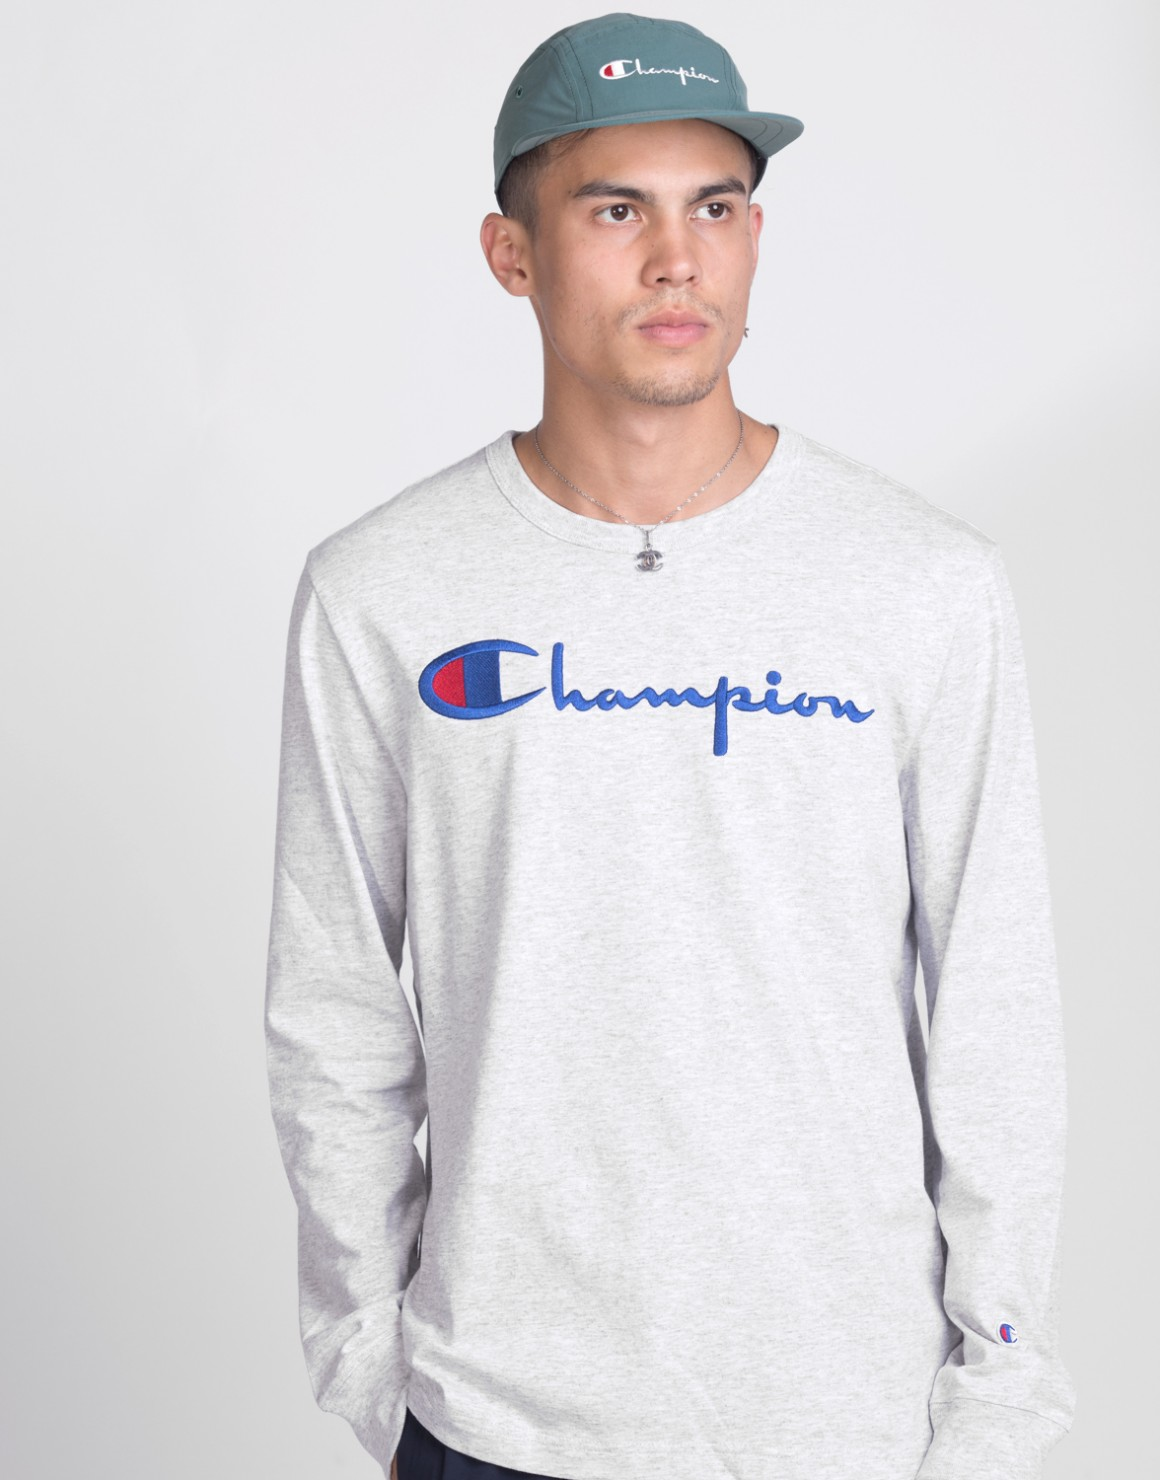 Crewneck Long Sleeve T shirt